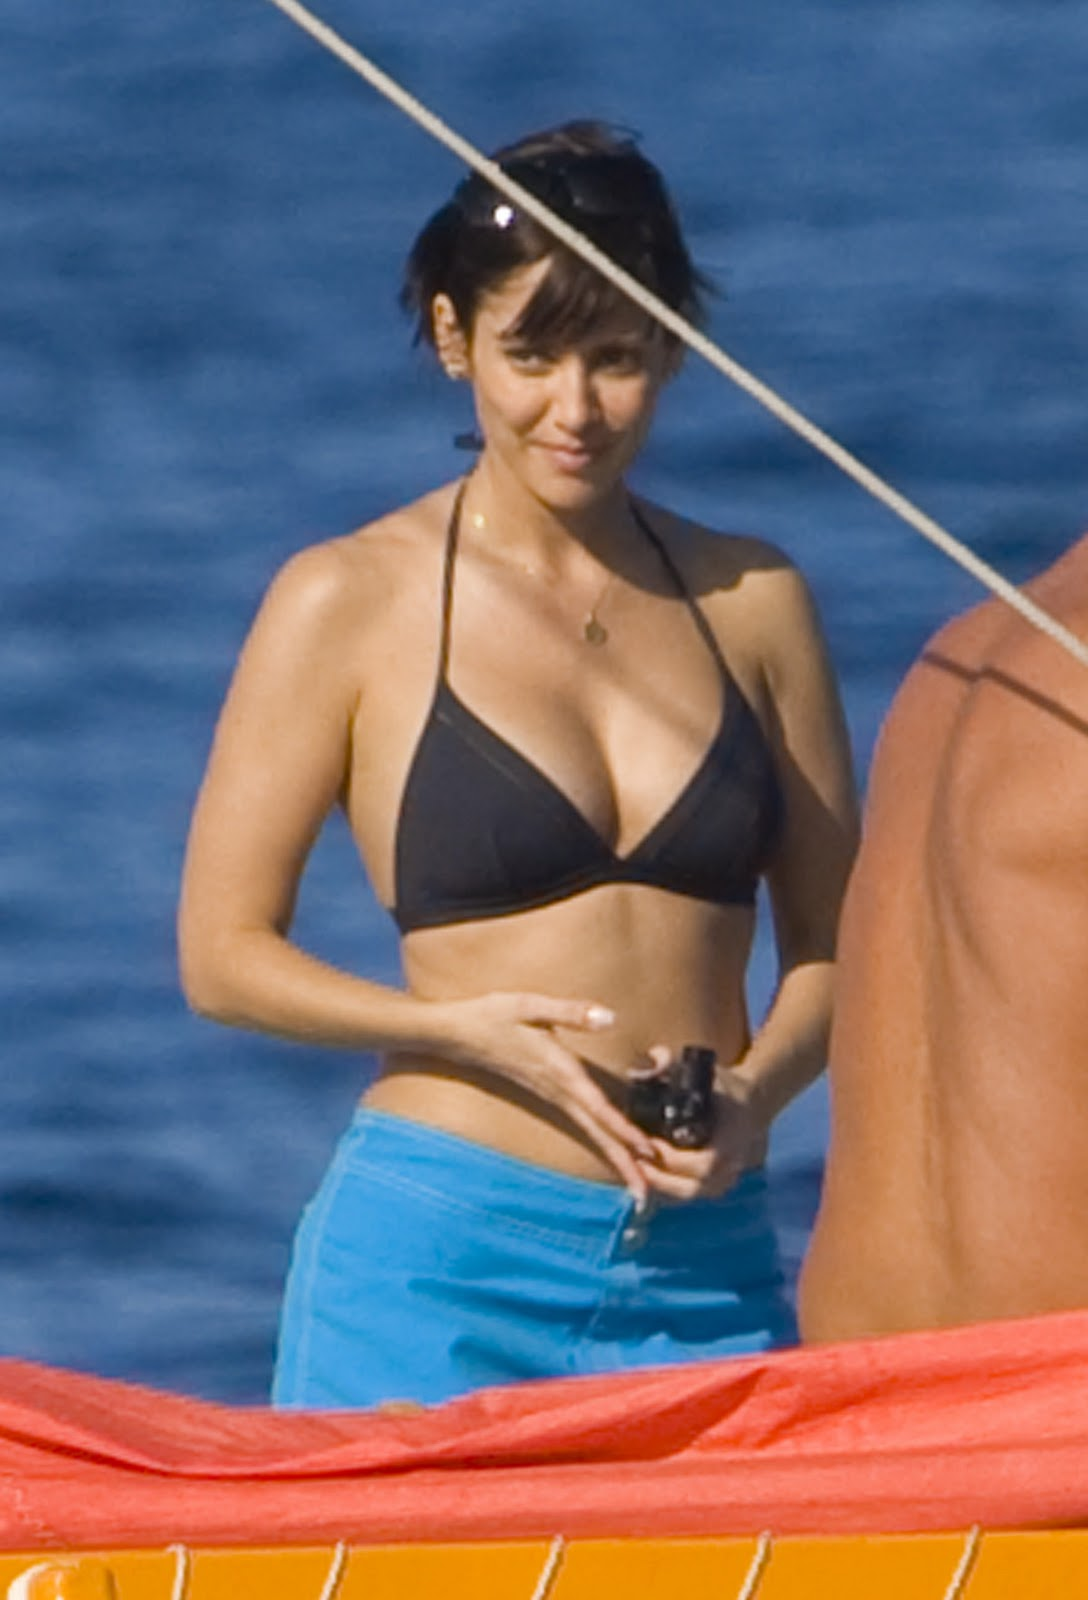 Ass Natalie Imbruglia naked (58 foto and video), Tits, Fappening, Boobs, legs 2019